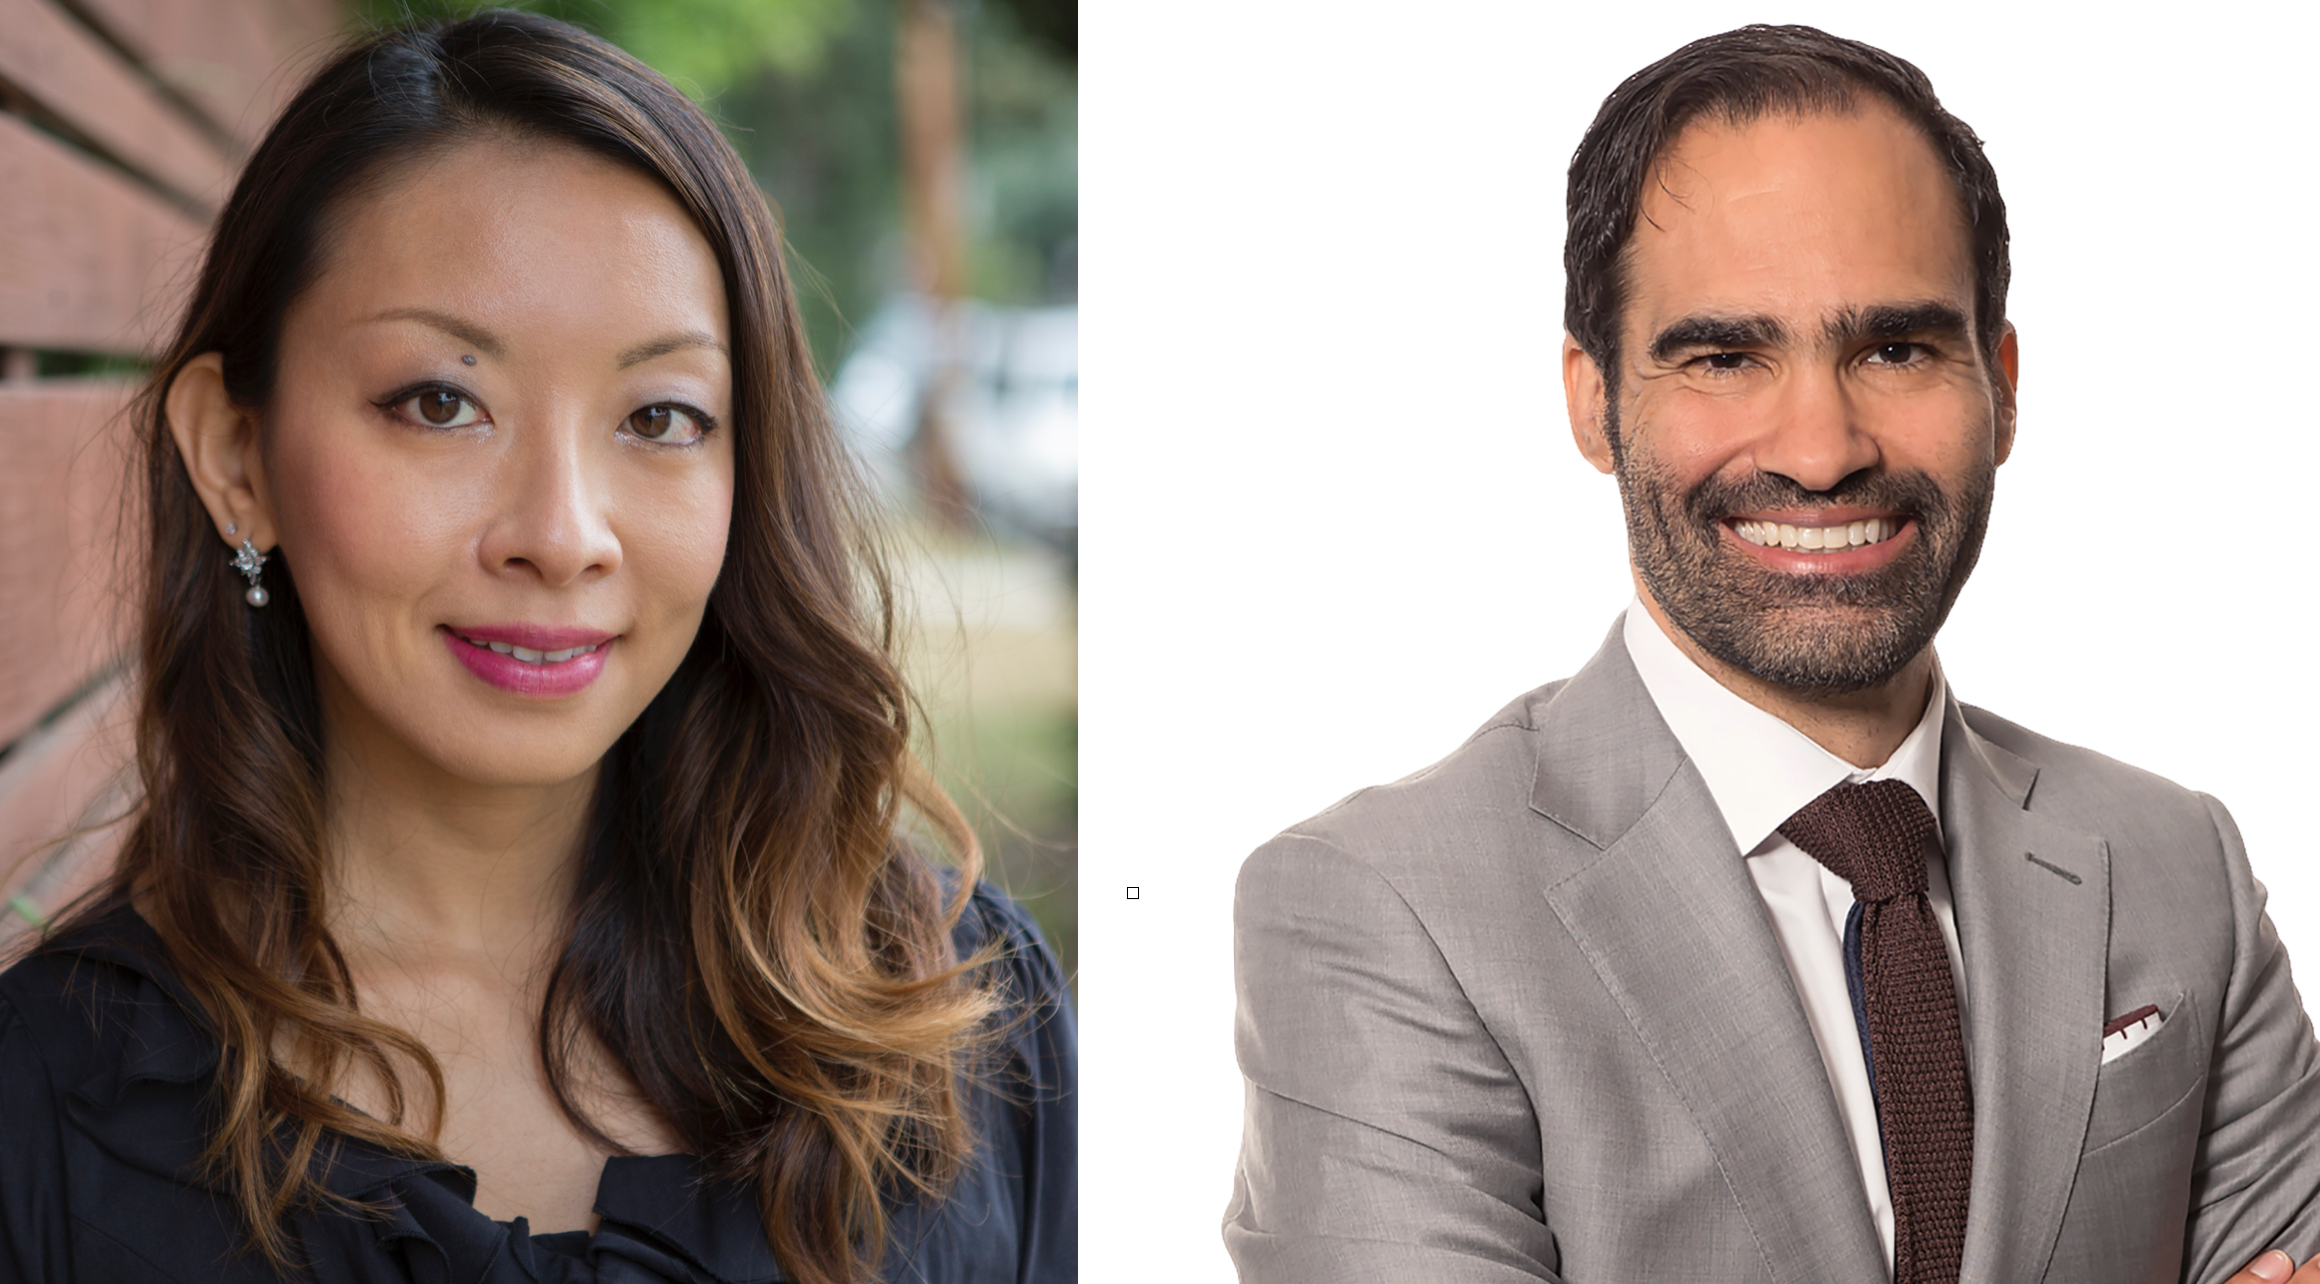 Collaborating to elevate brands: Dr. Mirei Takashima Claremon and Dr. Daniel A.Langer